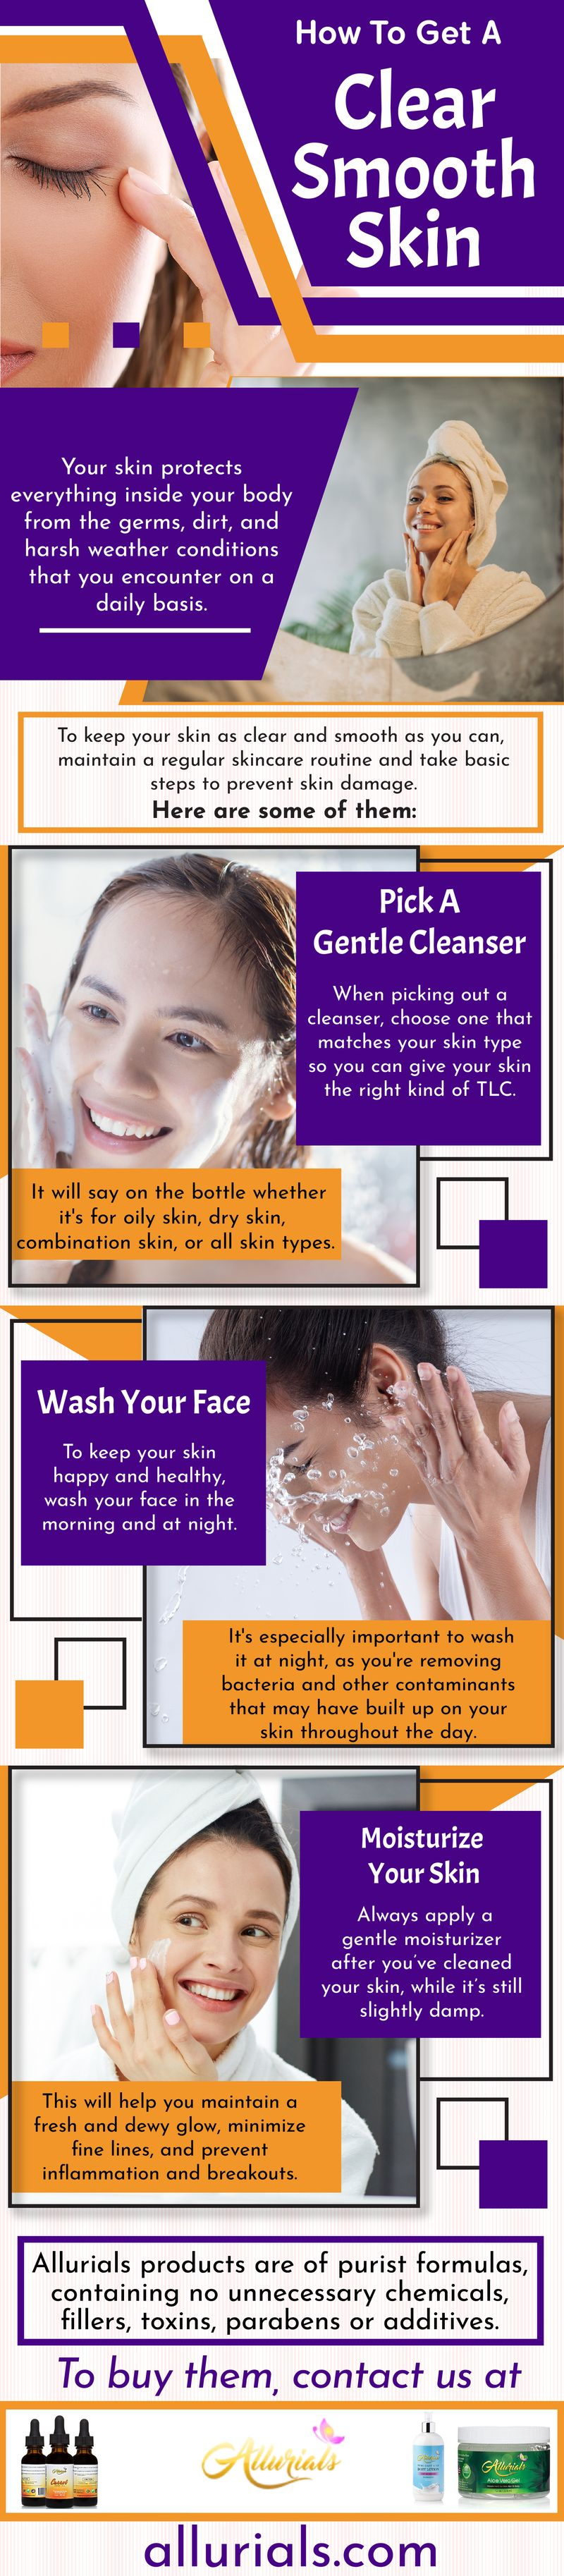 How To Get A Clear Smooth Skin